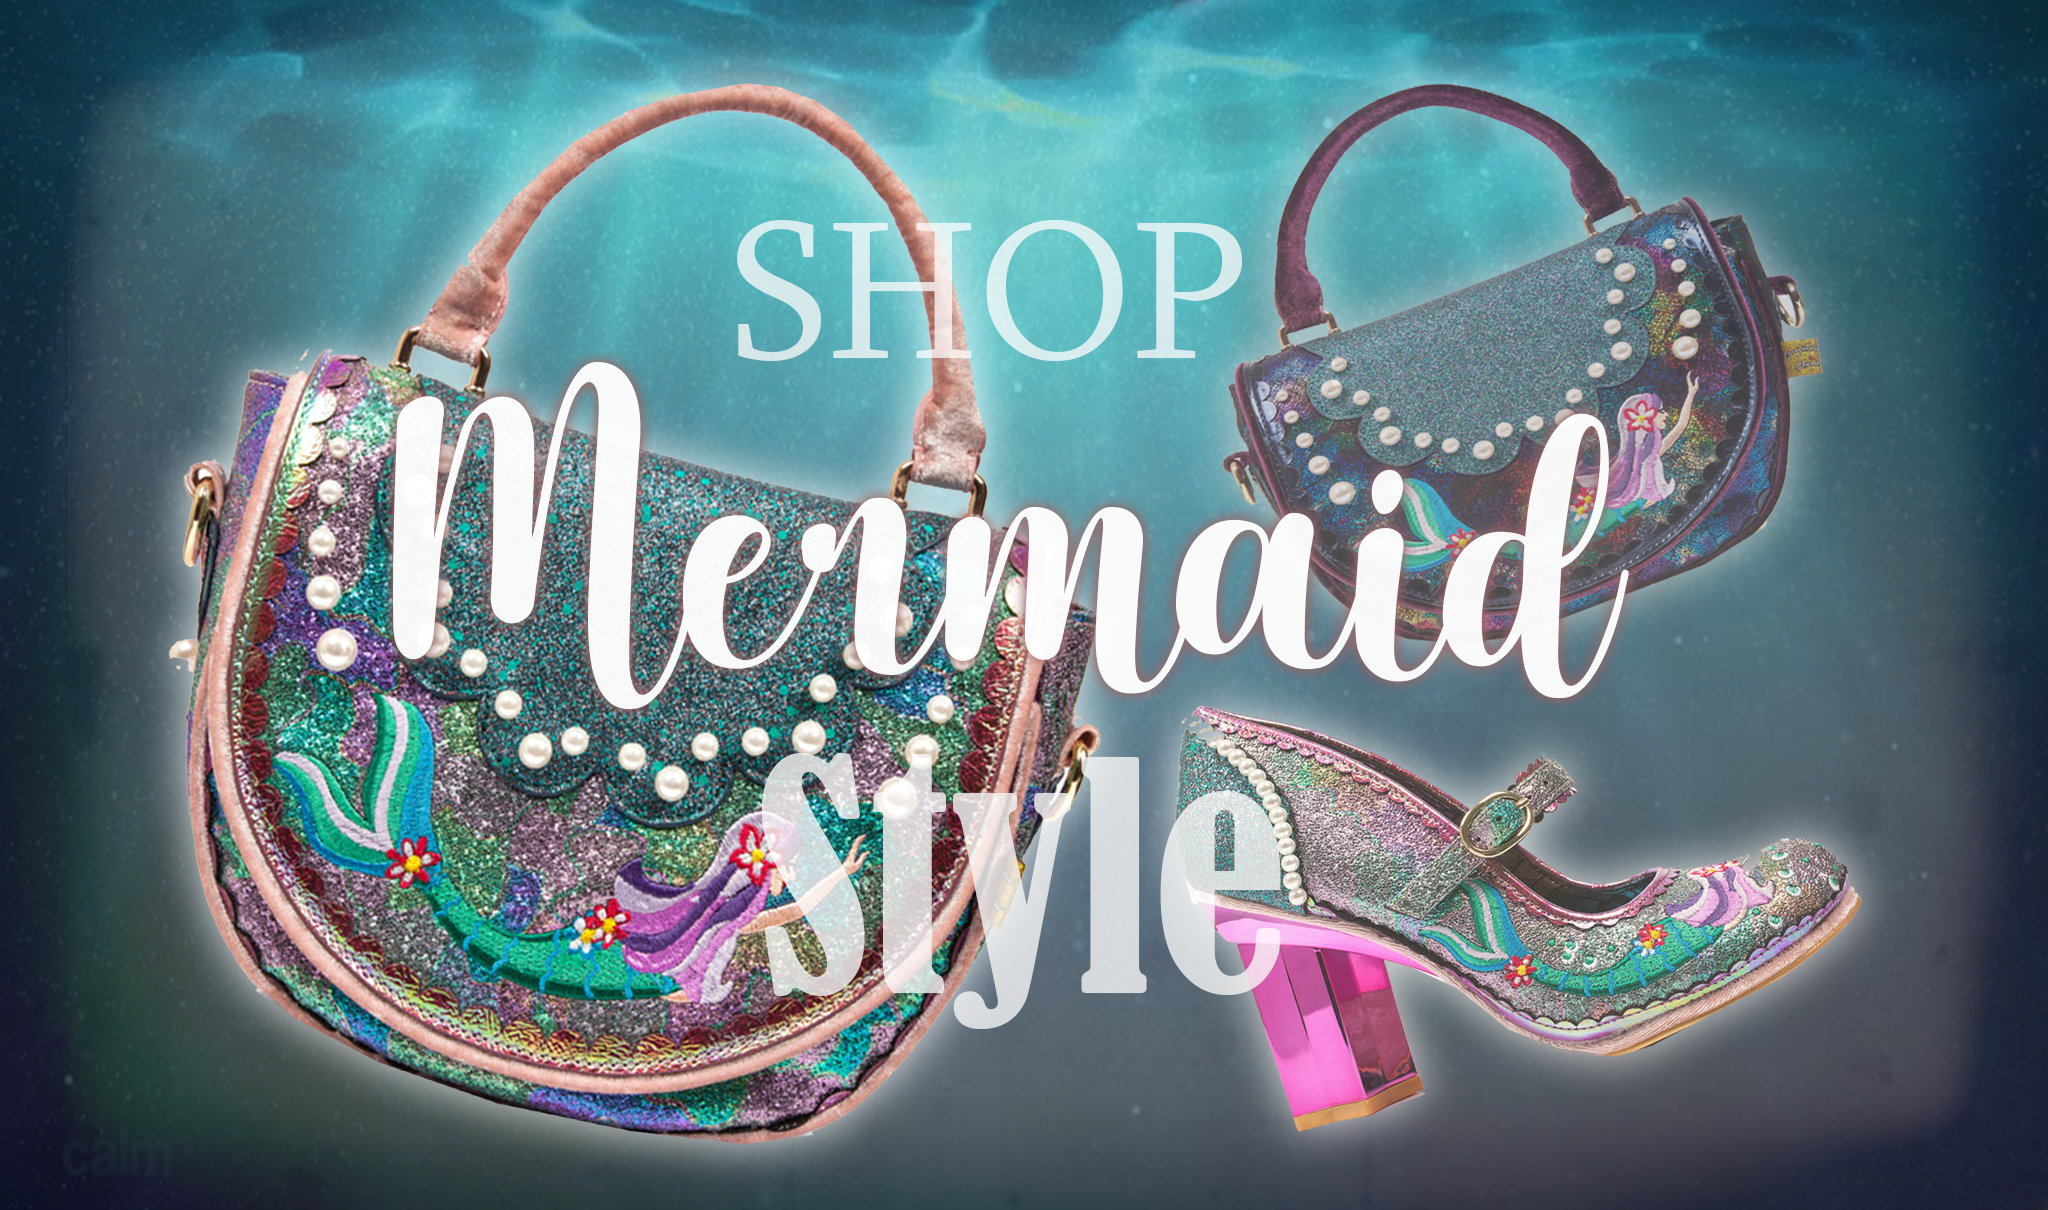 Mermaid Clothing Shoes and Handbags